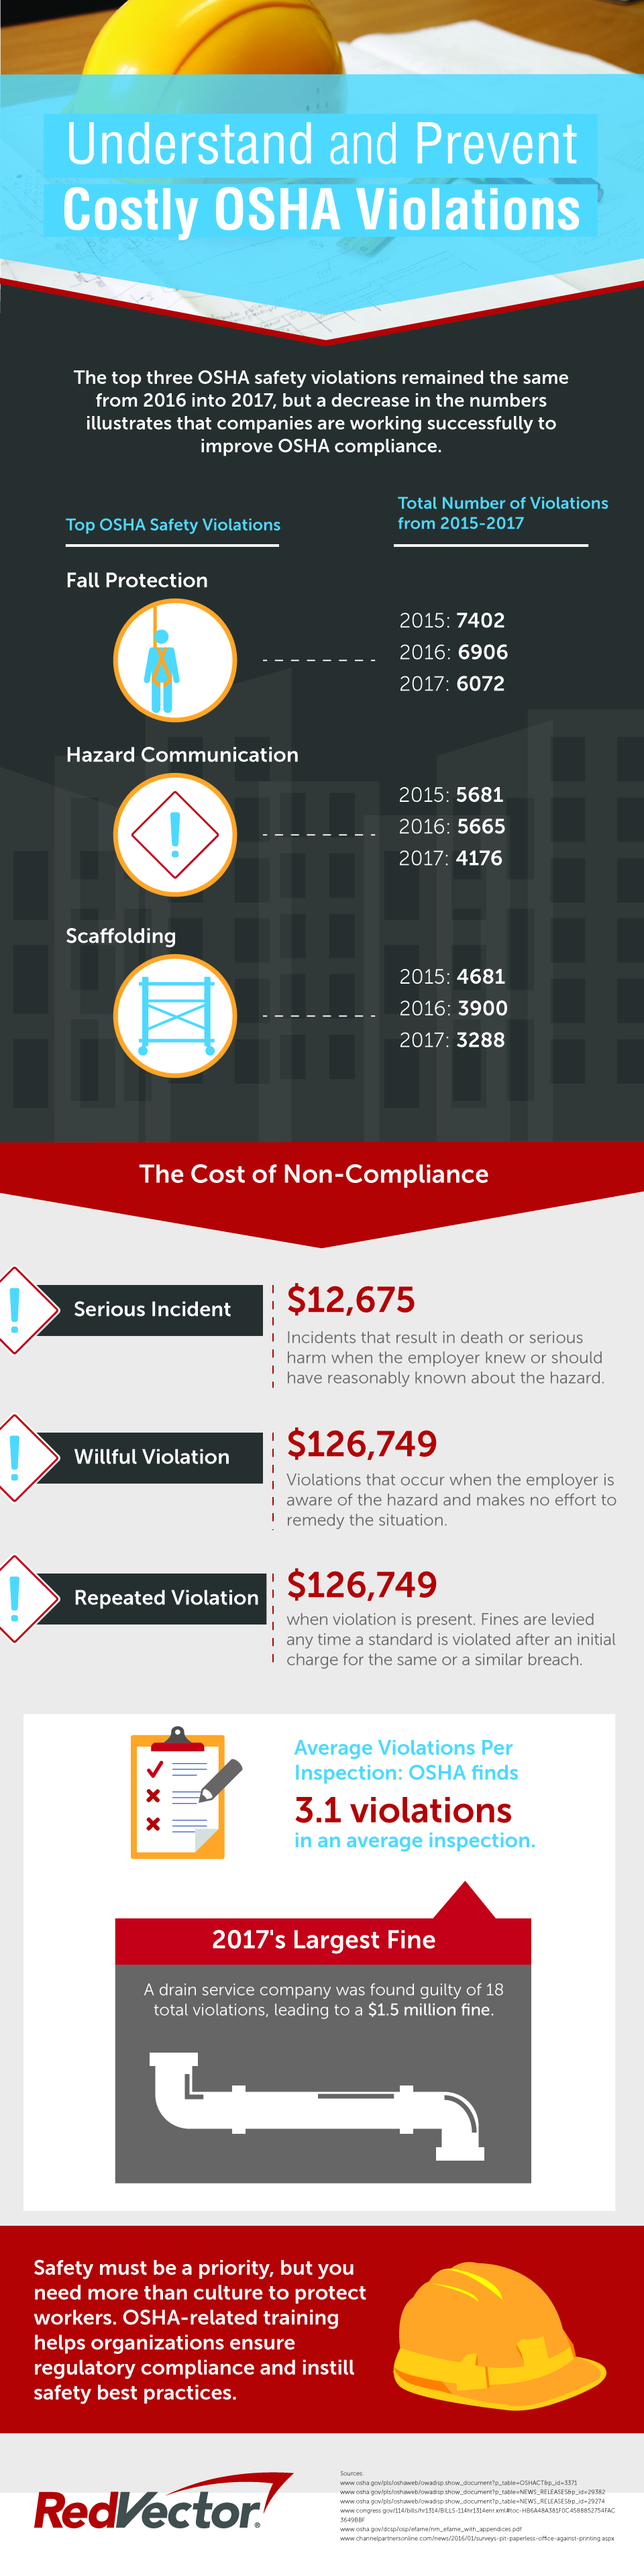 INFOGRAPHIC: Understand and Prevent Costly OSHA Violations